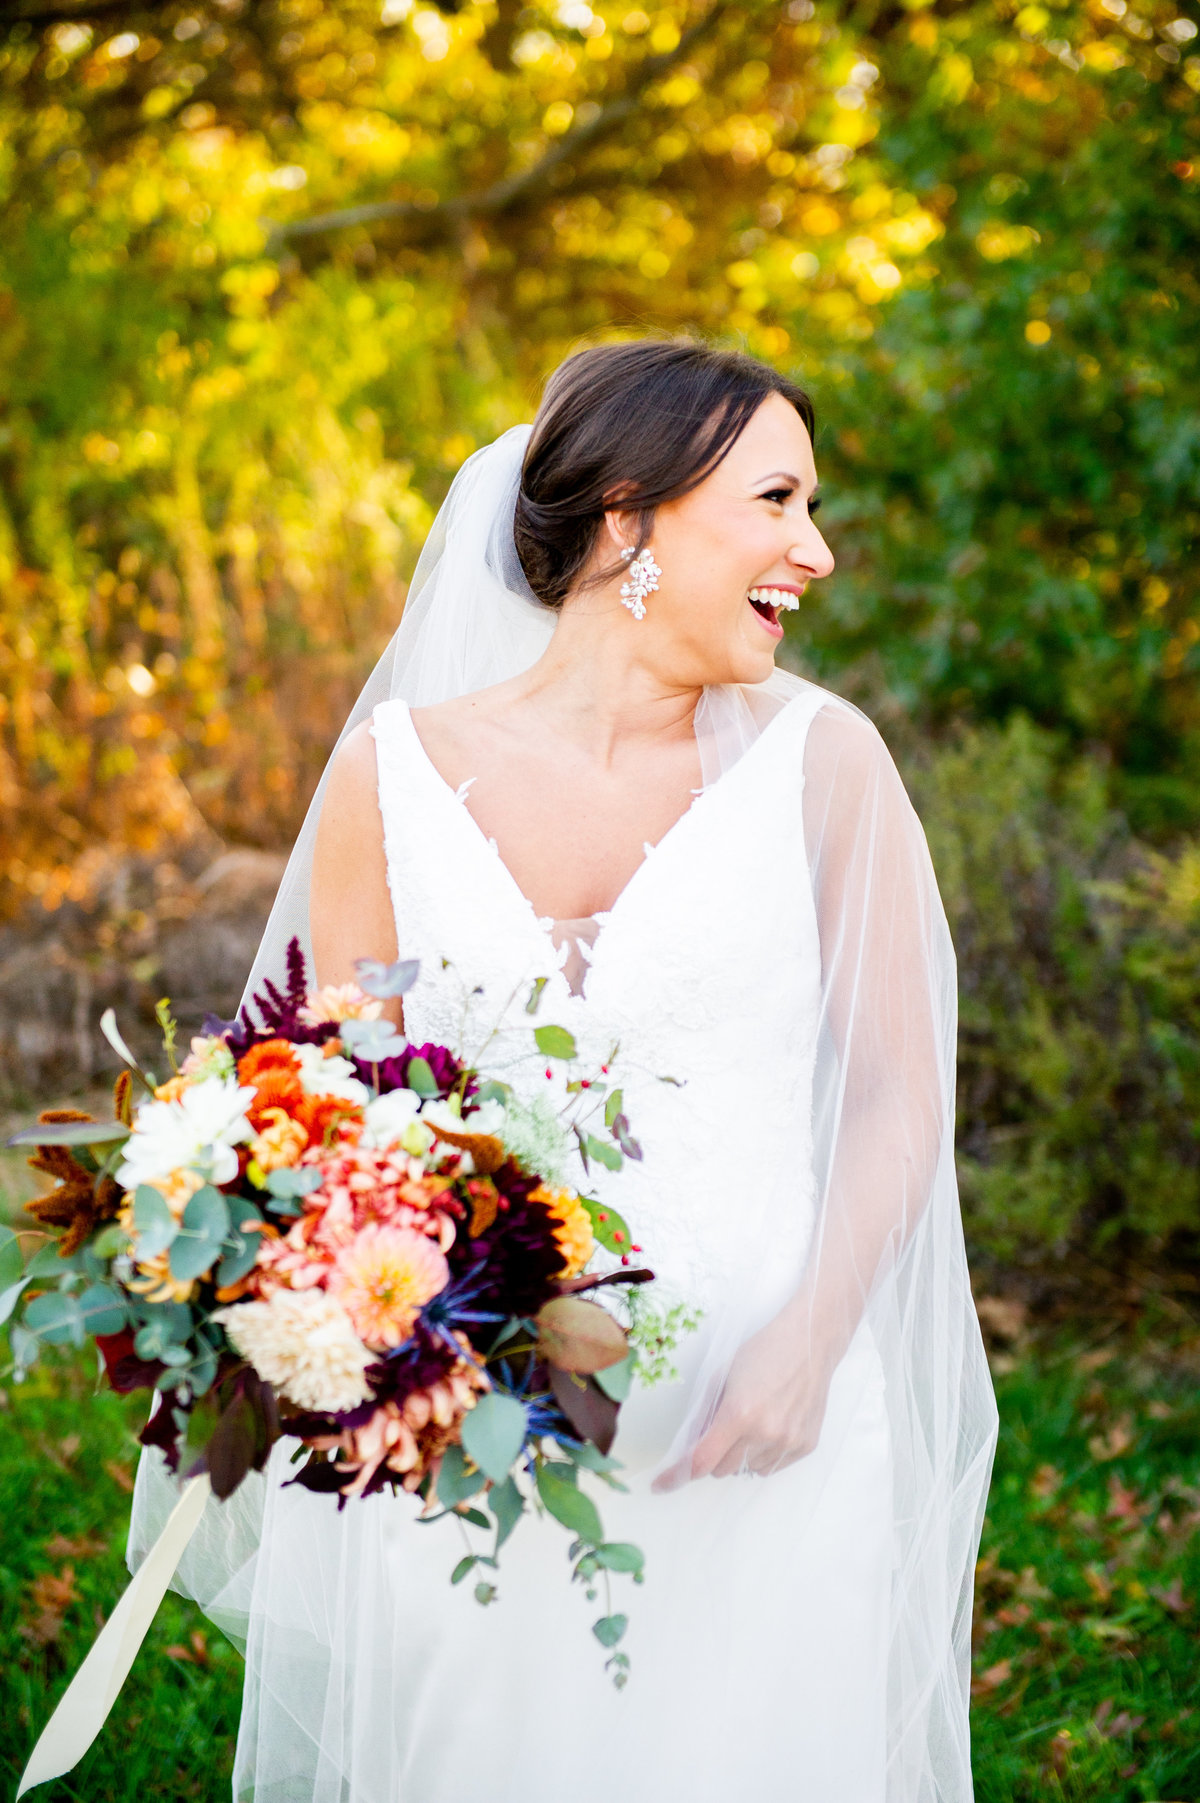 fall bride looks to side and laughs